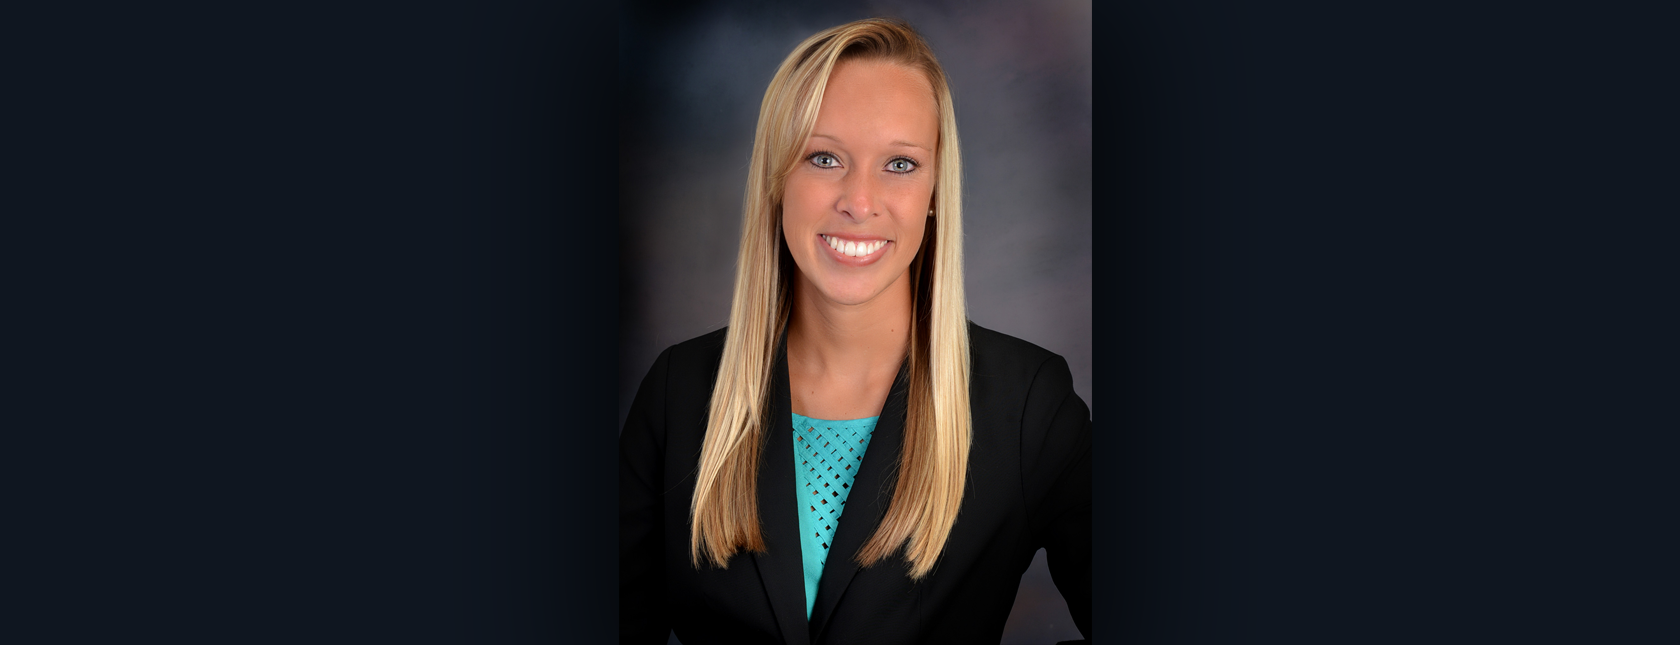 Riley Beth Willett Joins FNB Bank